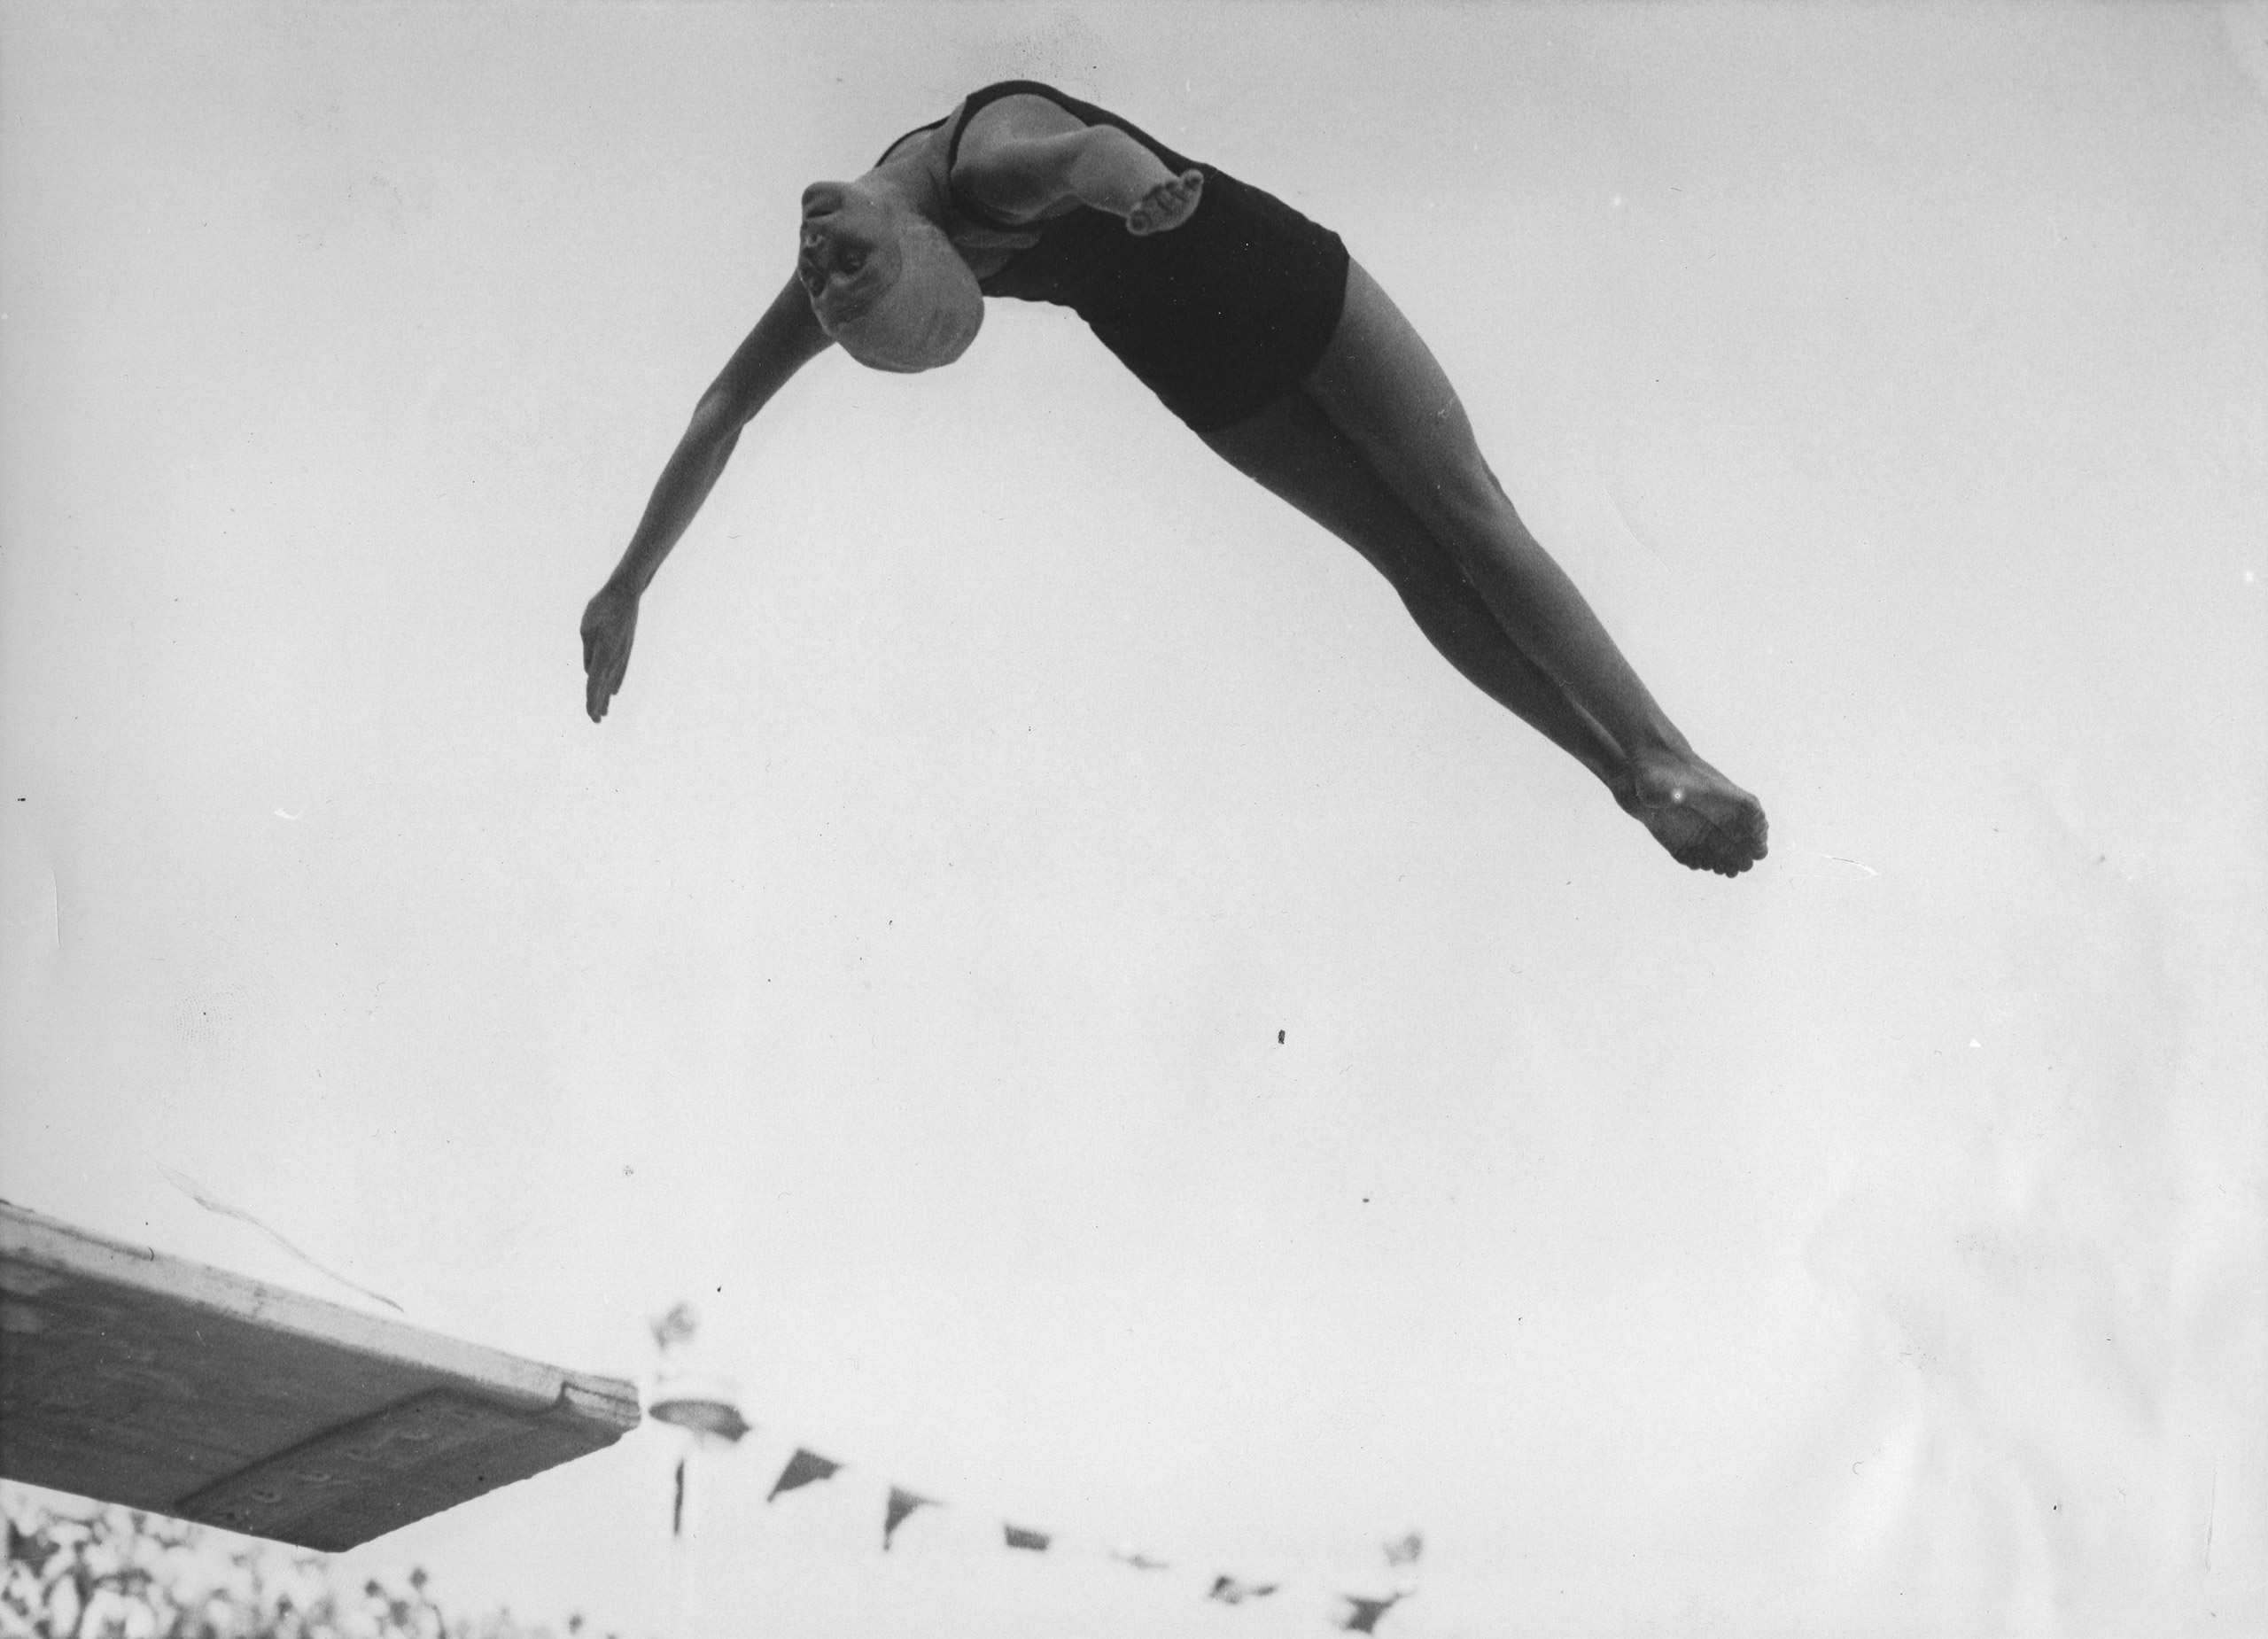 The 13-year-old springboard diver Marjorie Gestring at the Olympic Games in Berlin. Aug. 12, 1936.